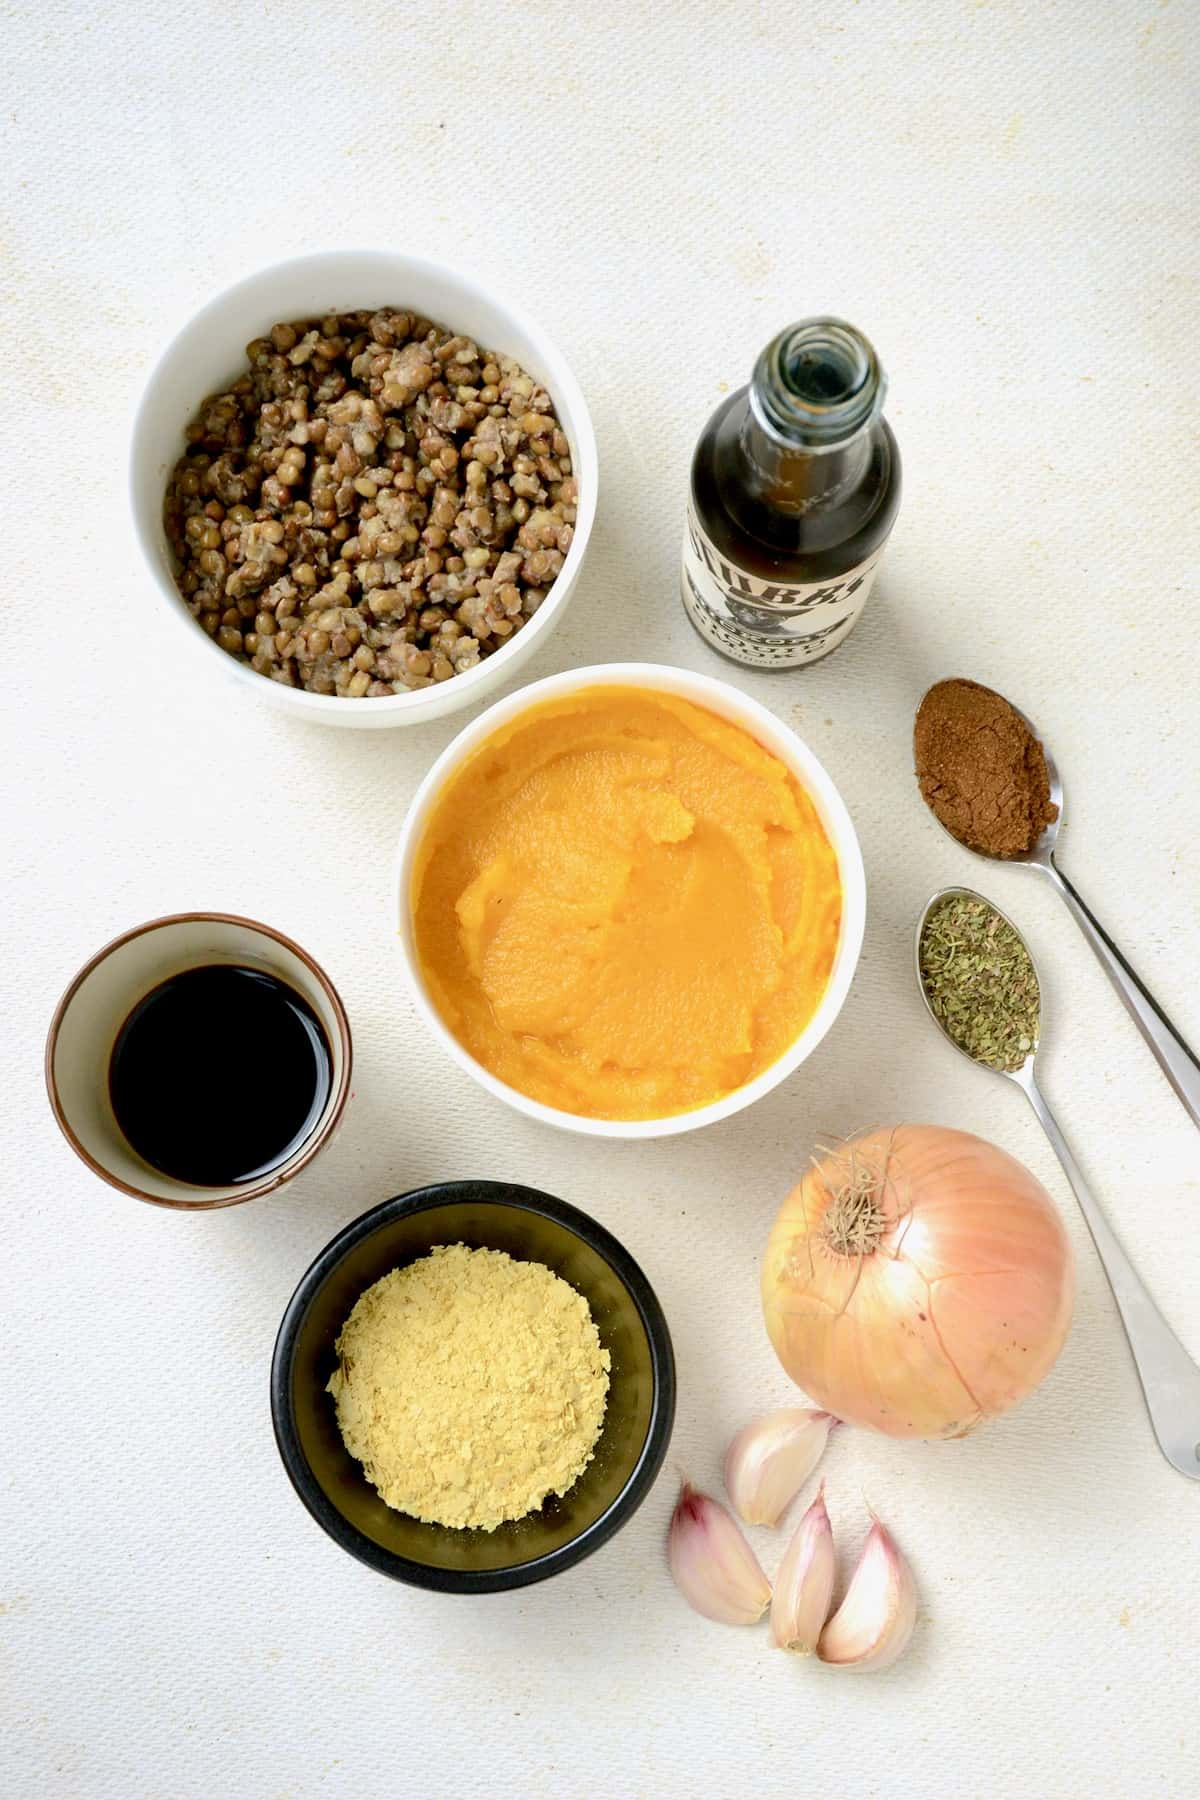 Ingredients on a white surface, bowls of pumpkin puree, lentils, nutritional yeast, soy sauce, a bottle of liquid smoke, onion, garlic and spices on spoons.